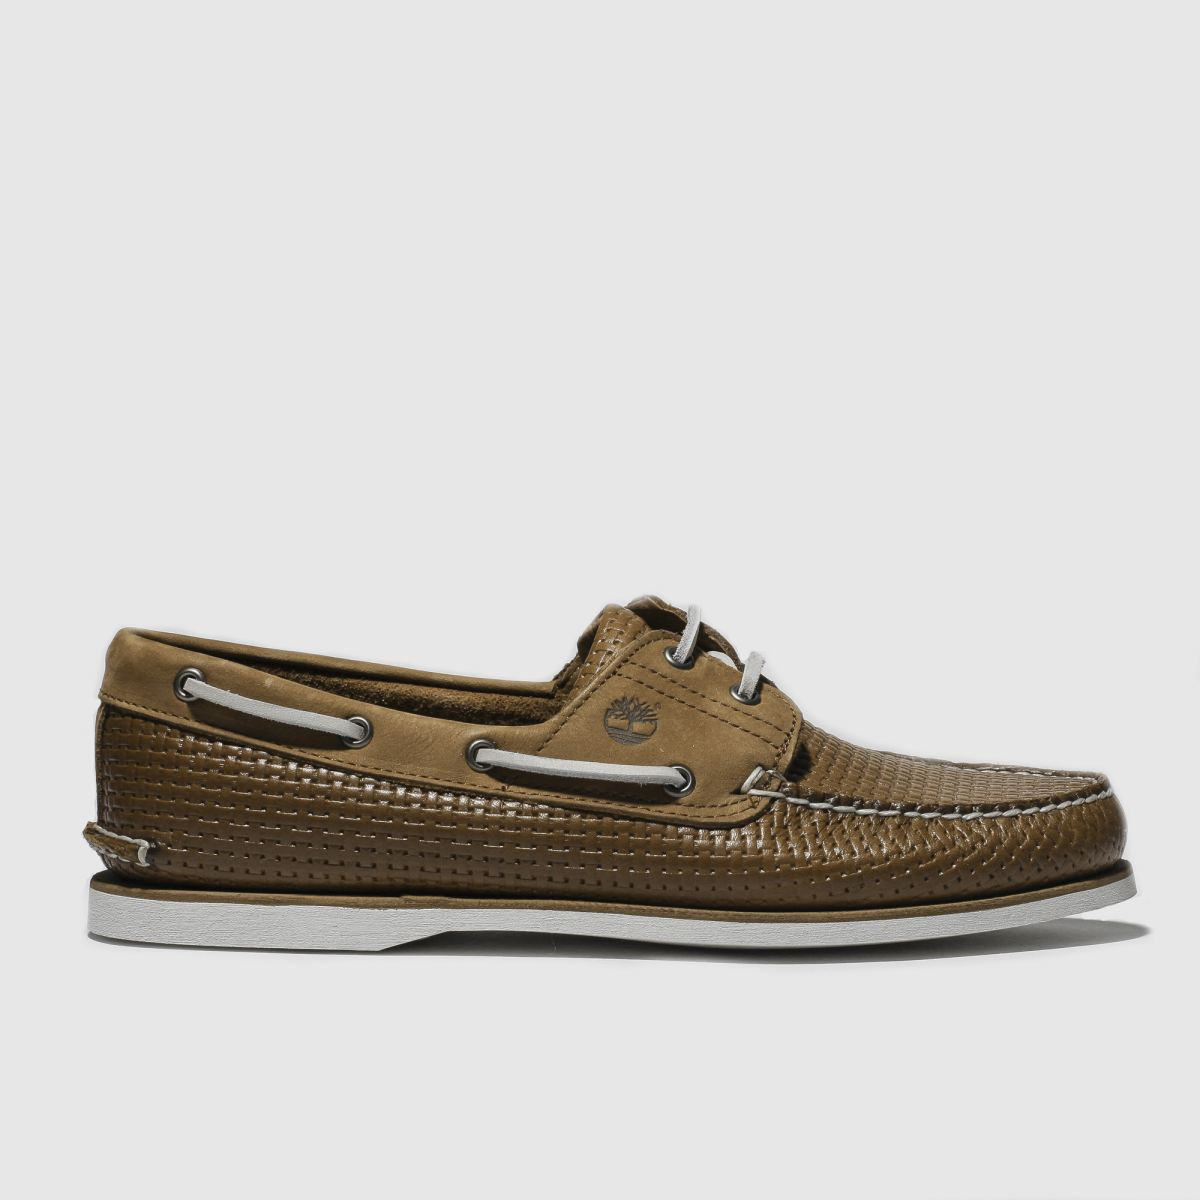 Timberland Tan Classic 2 Eye Boat Shoes